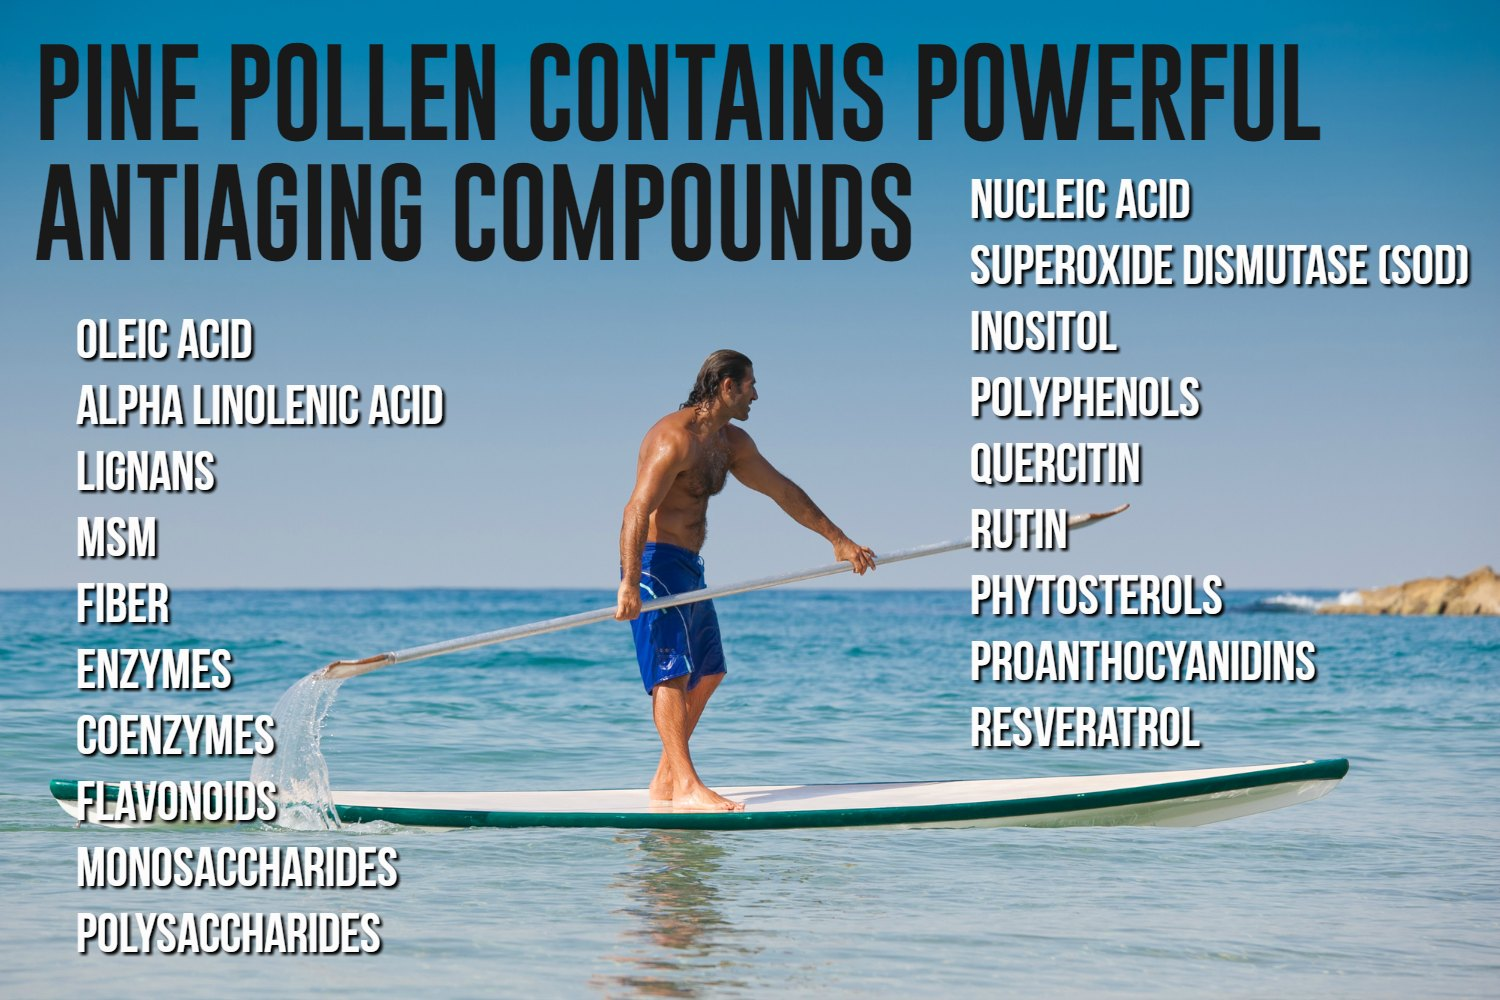 Pine Pollen Contains Anti-Aging Compounds